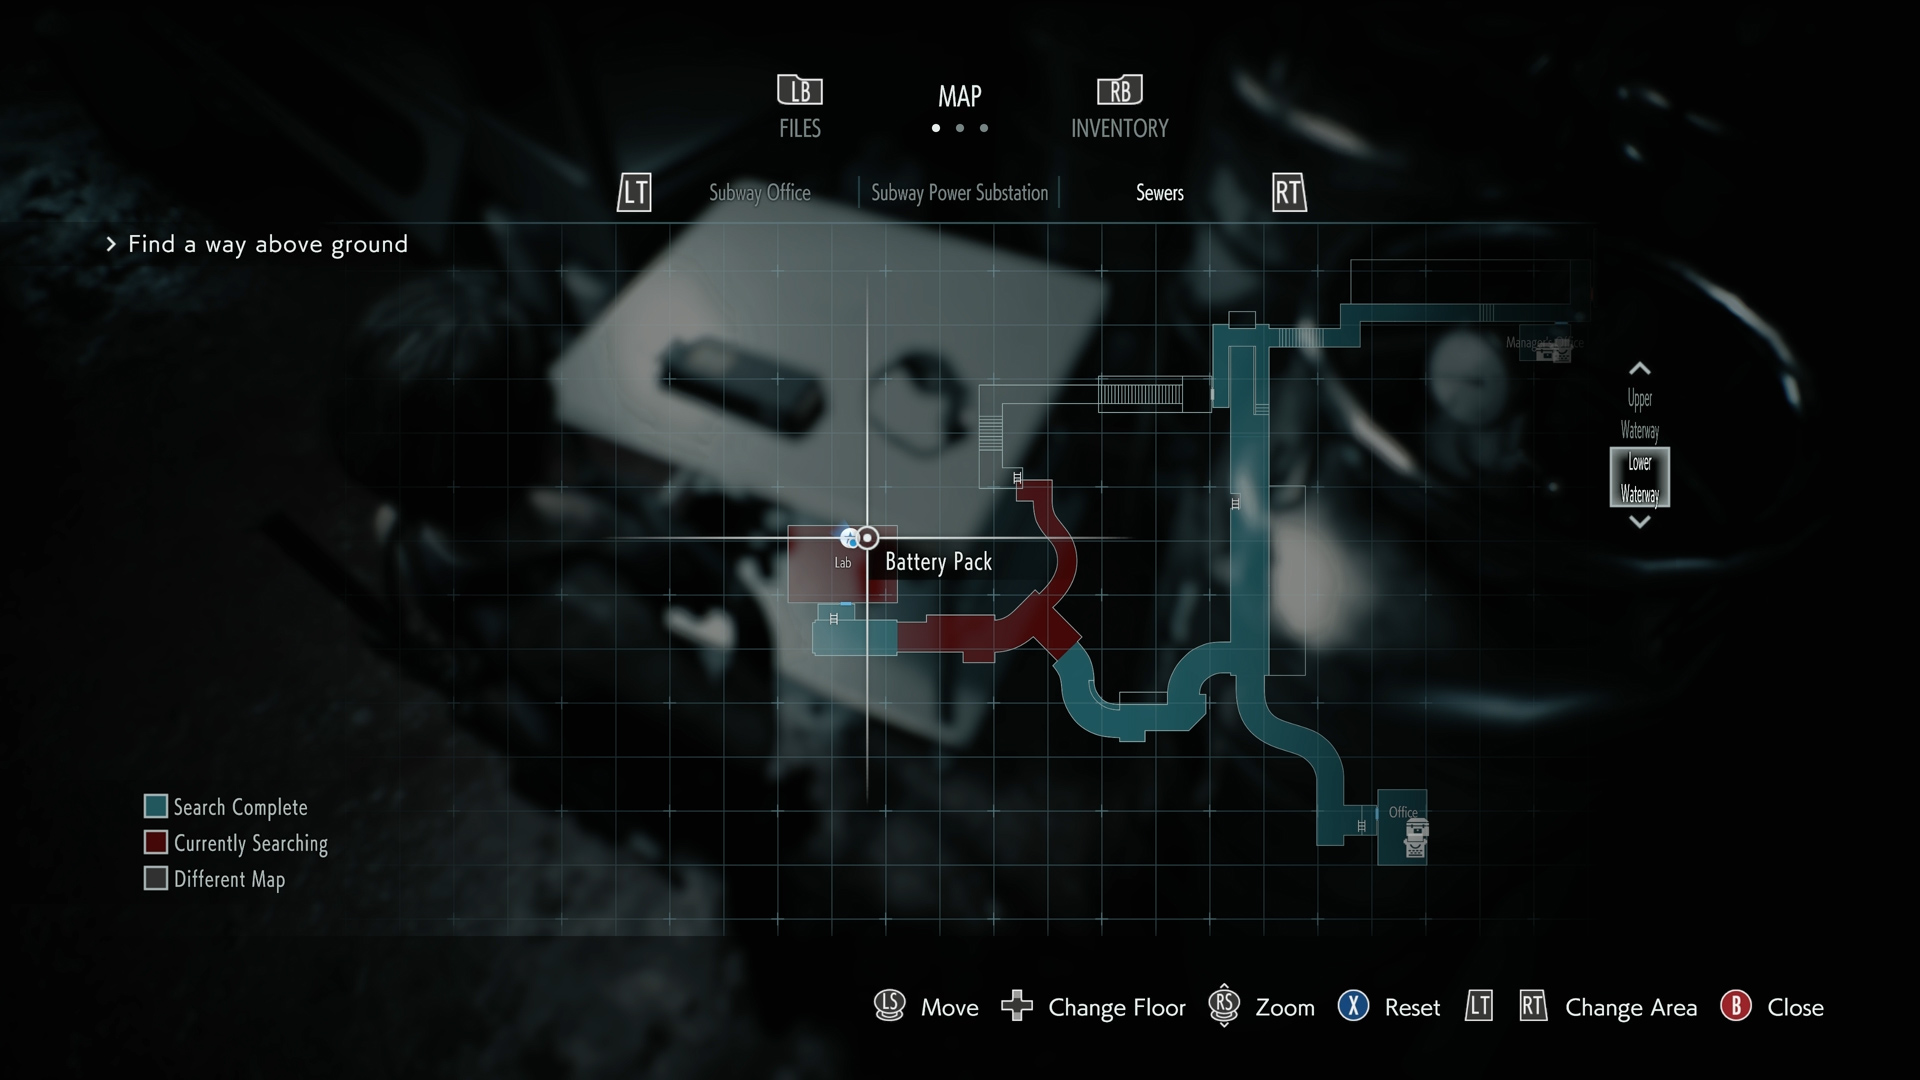 resident evil 3 battery pack location map